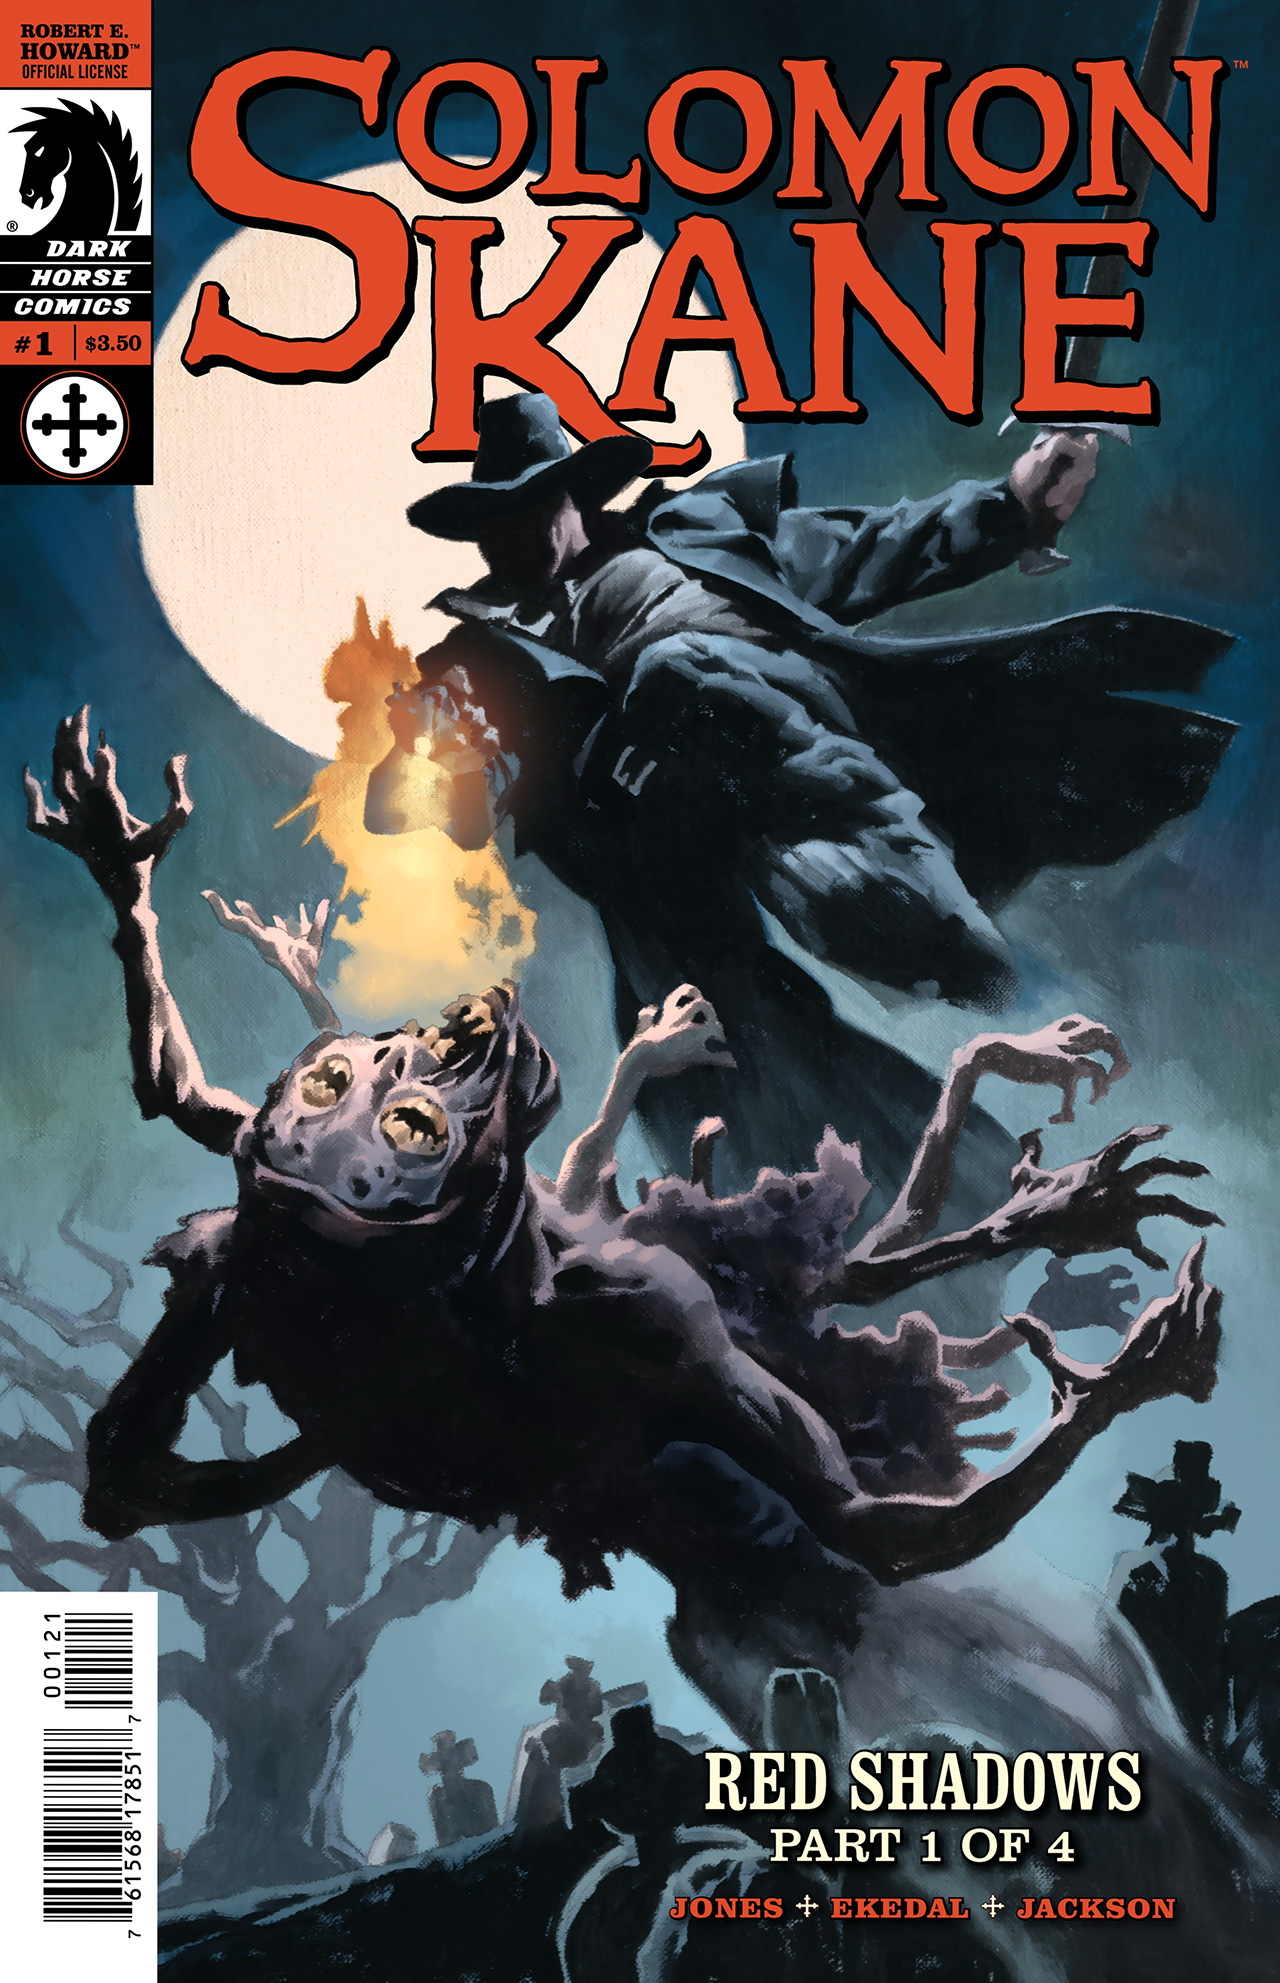 Read online Solomon Kane: Red Shadows comic -  Issue #1 - 2